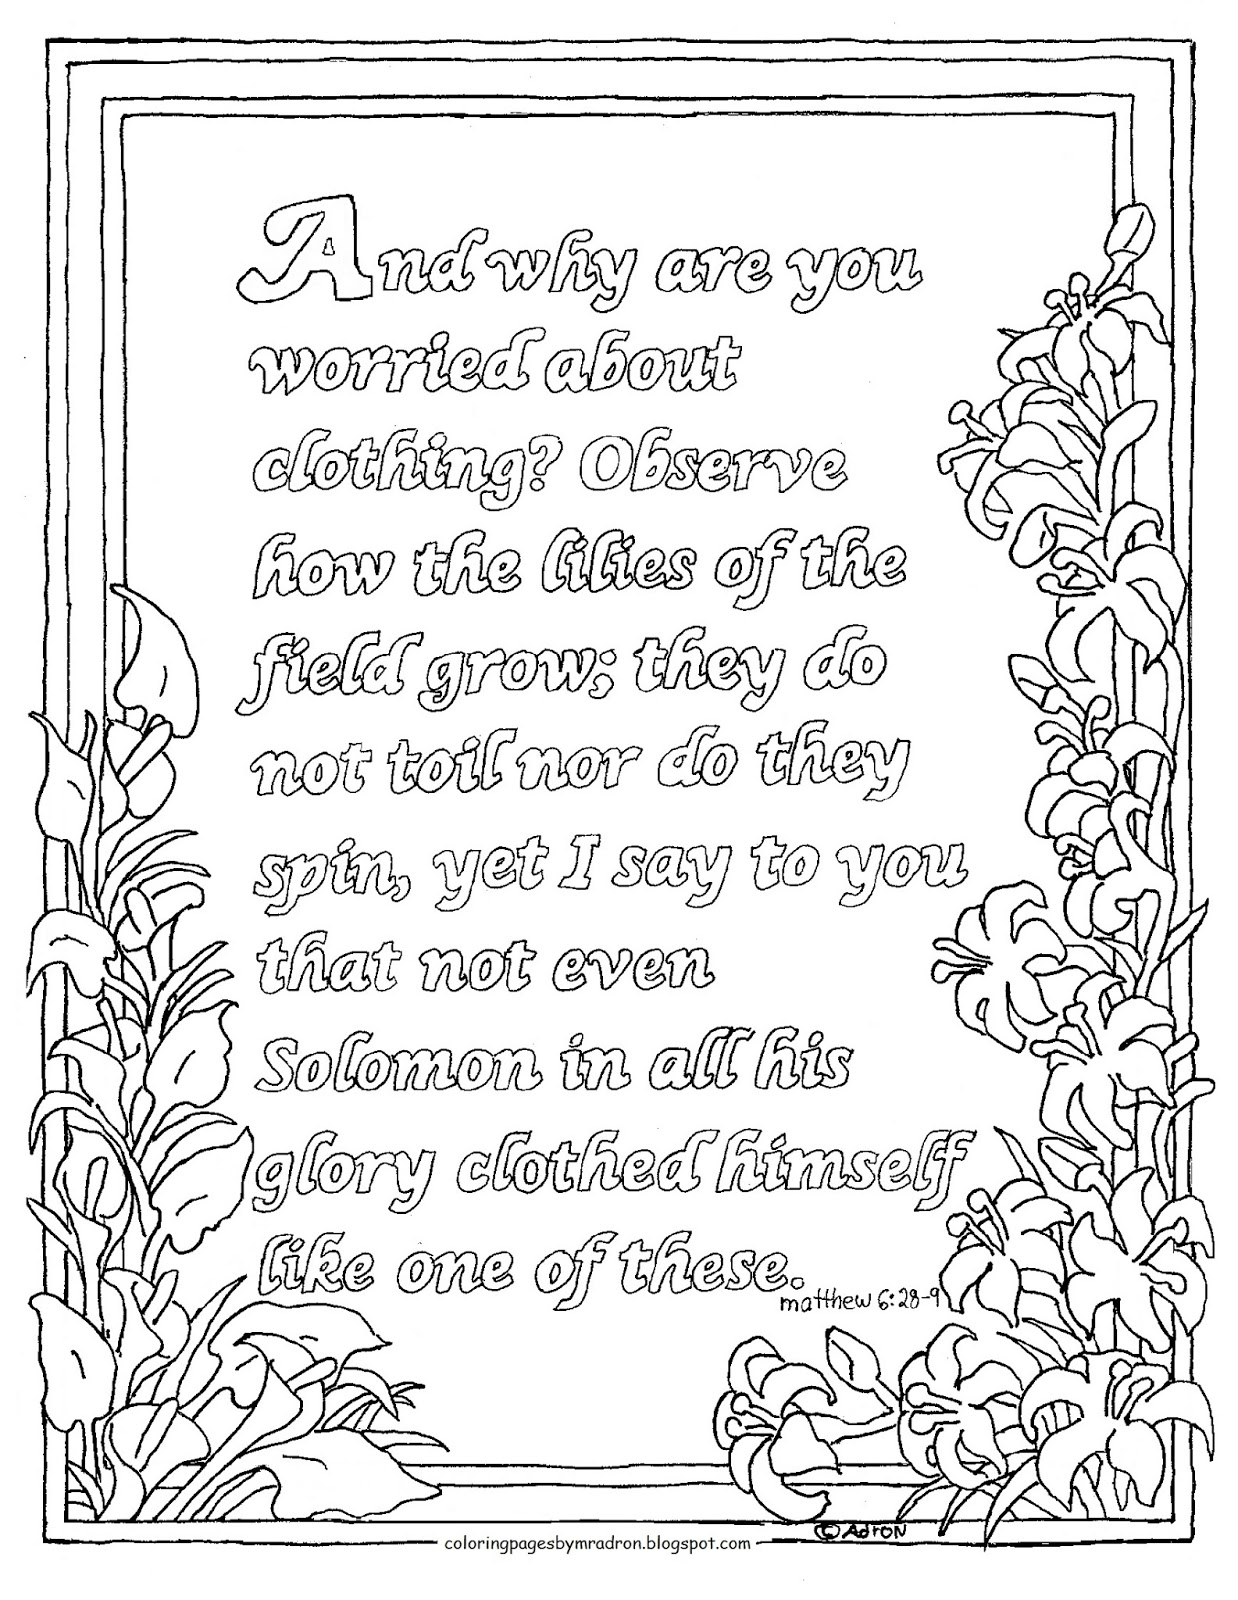 Coloring pages for kids by mr adron printable coloring for Matthew 6 25 34 coloring page